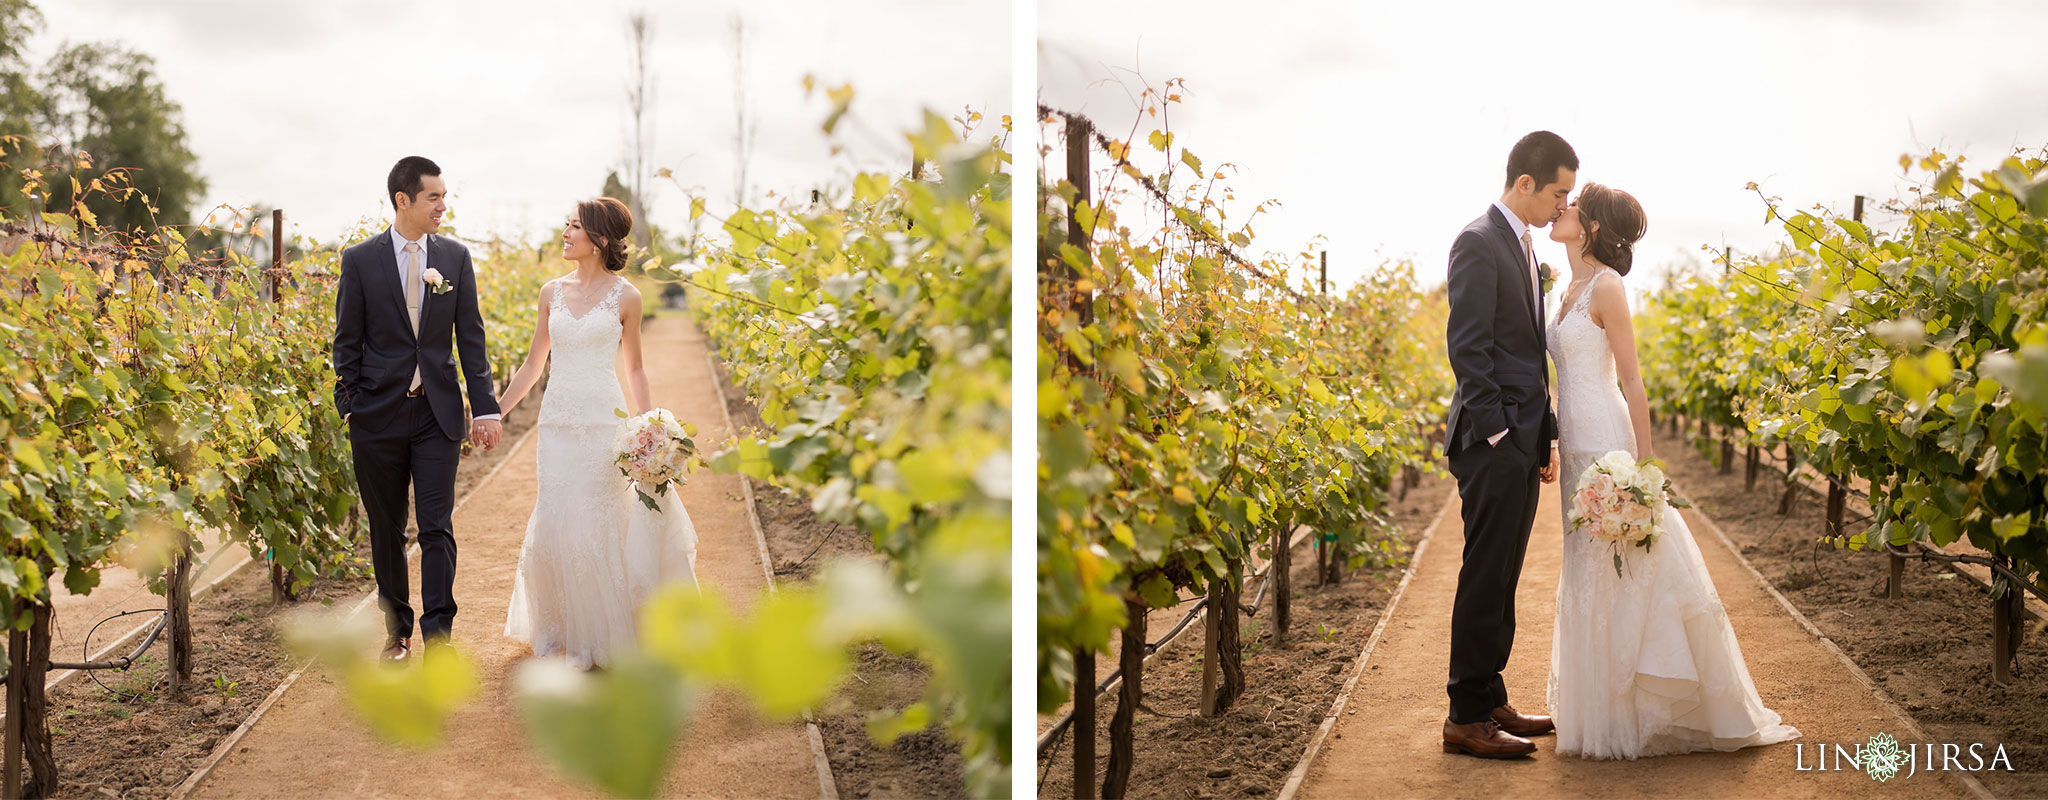 14 turnip rose promenade orange county vineyard wedding photography